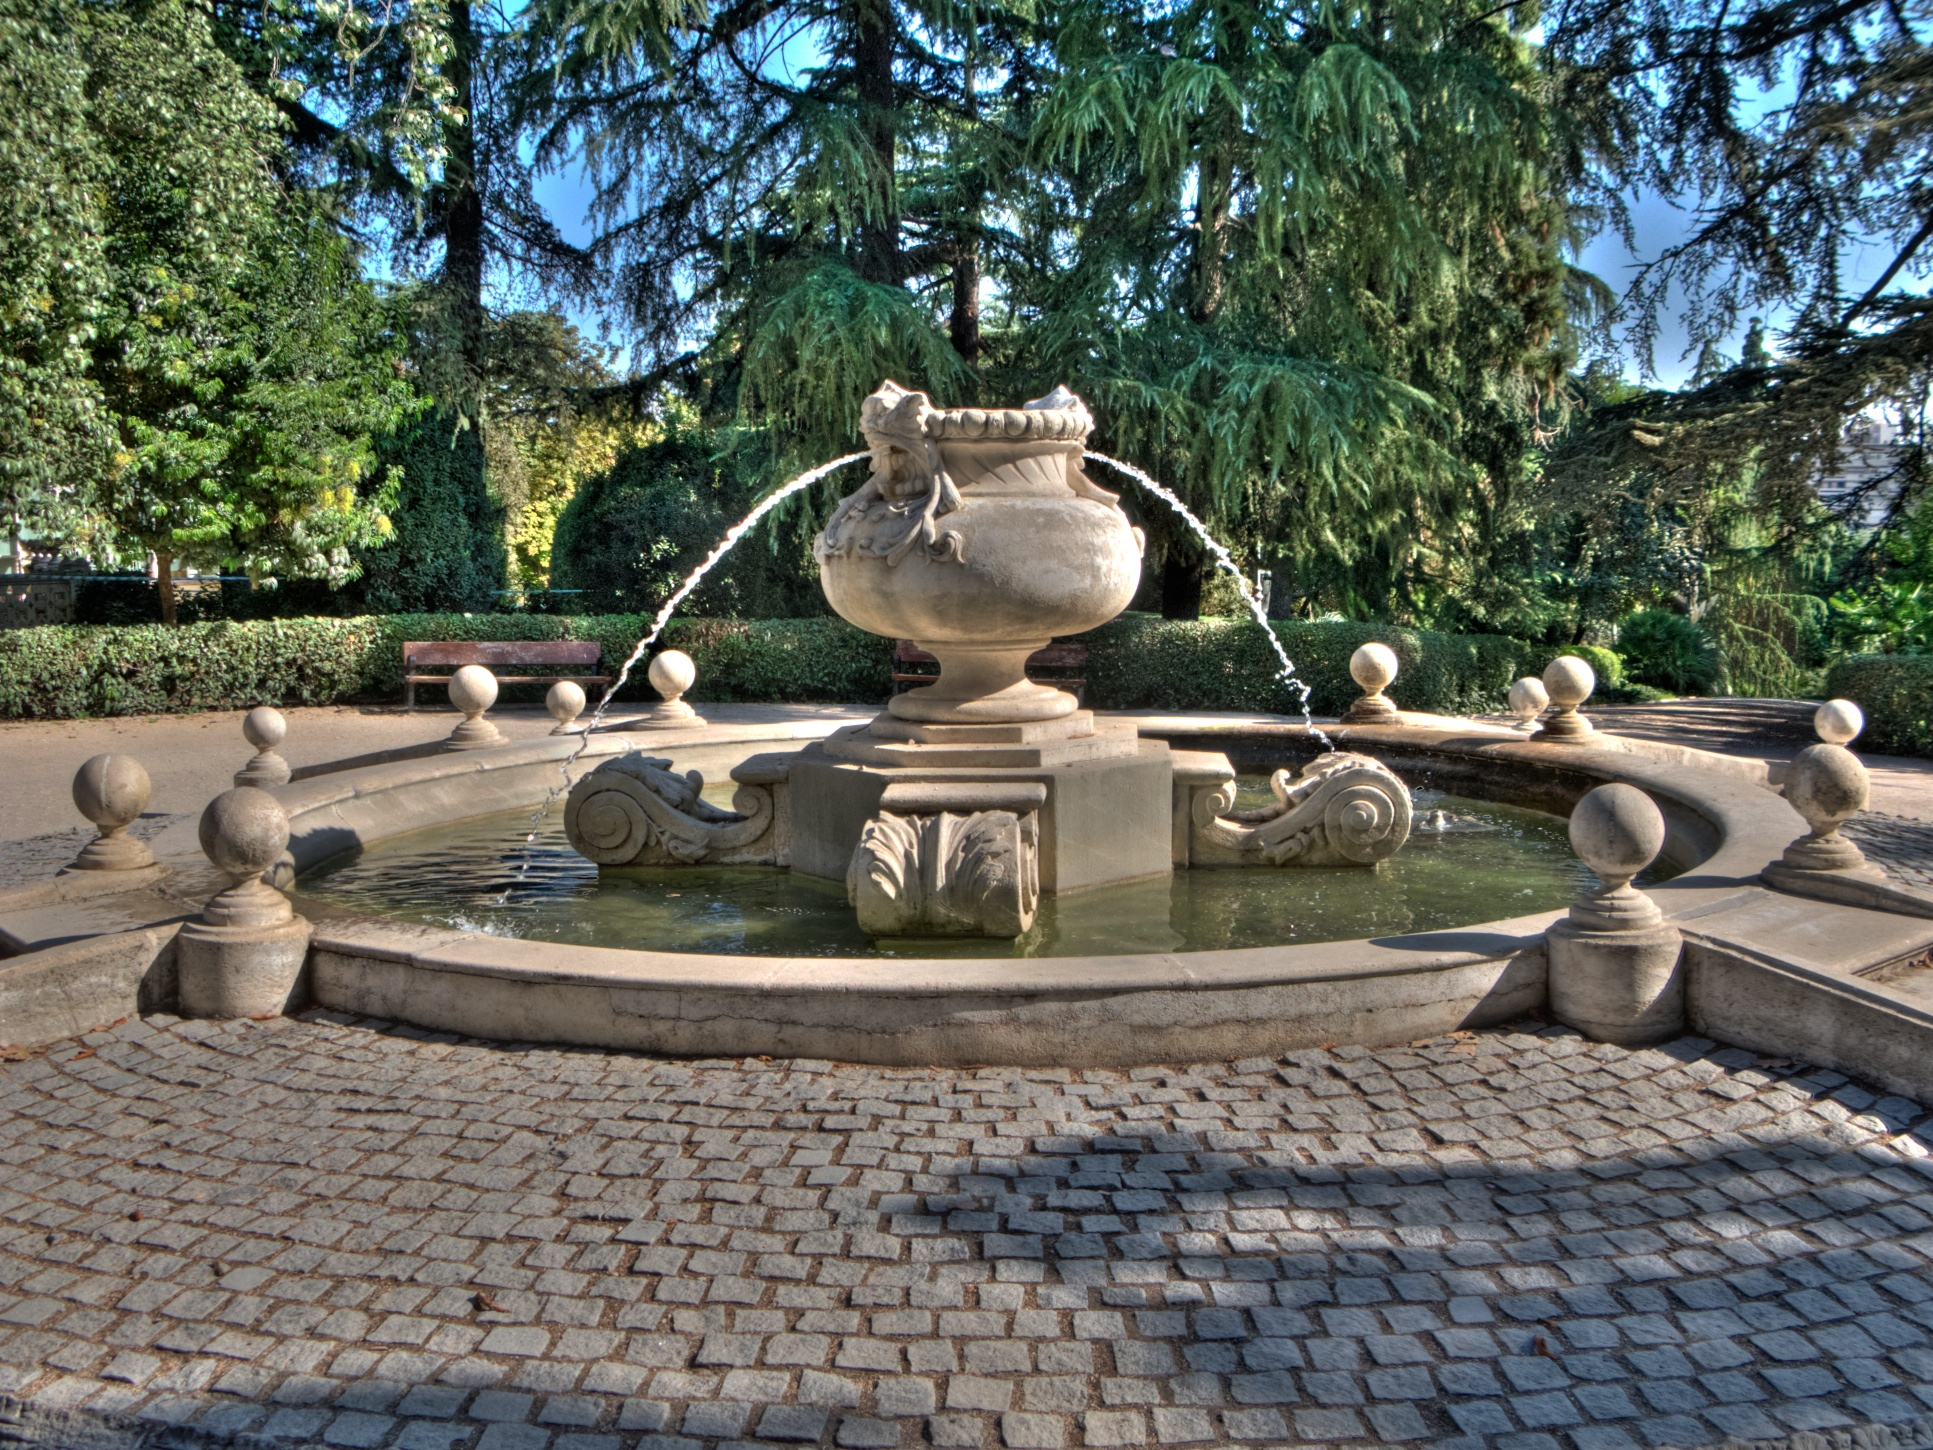 The 10 most beautiful parks and gardens in madrid for Piscina fuente del berro